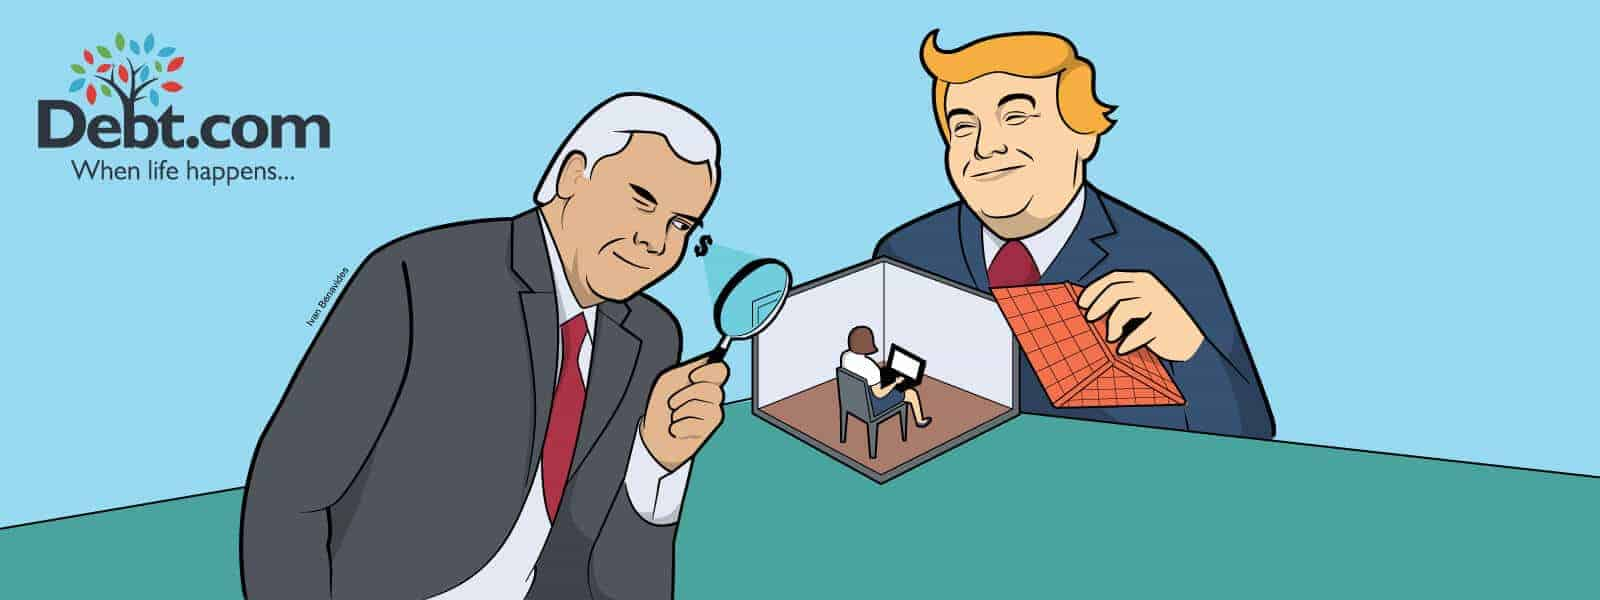 Donald Trump and Mike Pence snoop on you in the privacy of your home (illustrated)